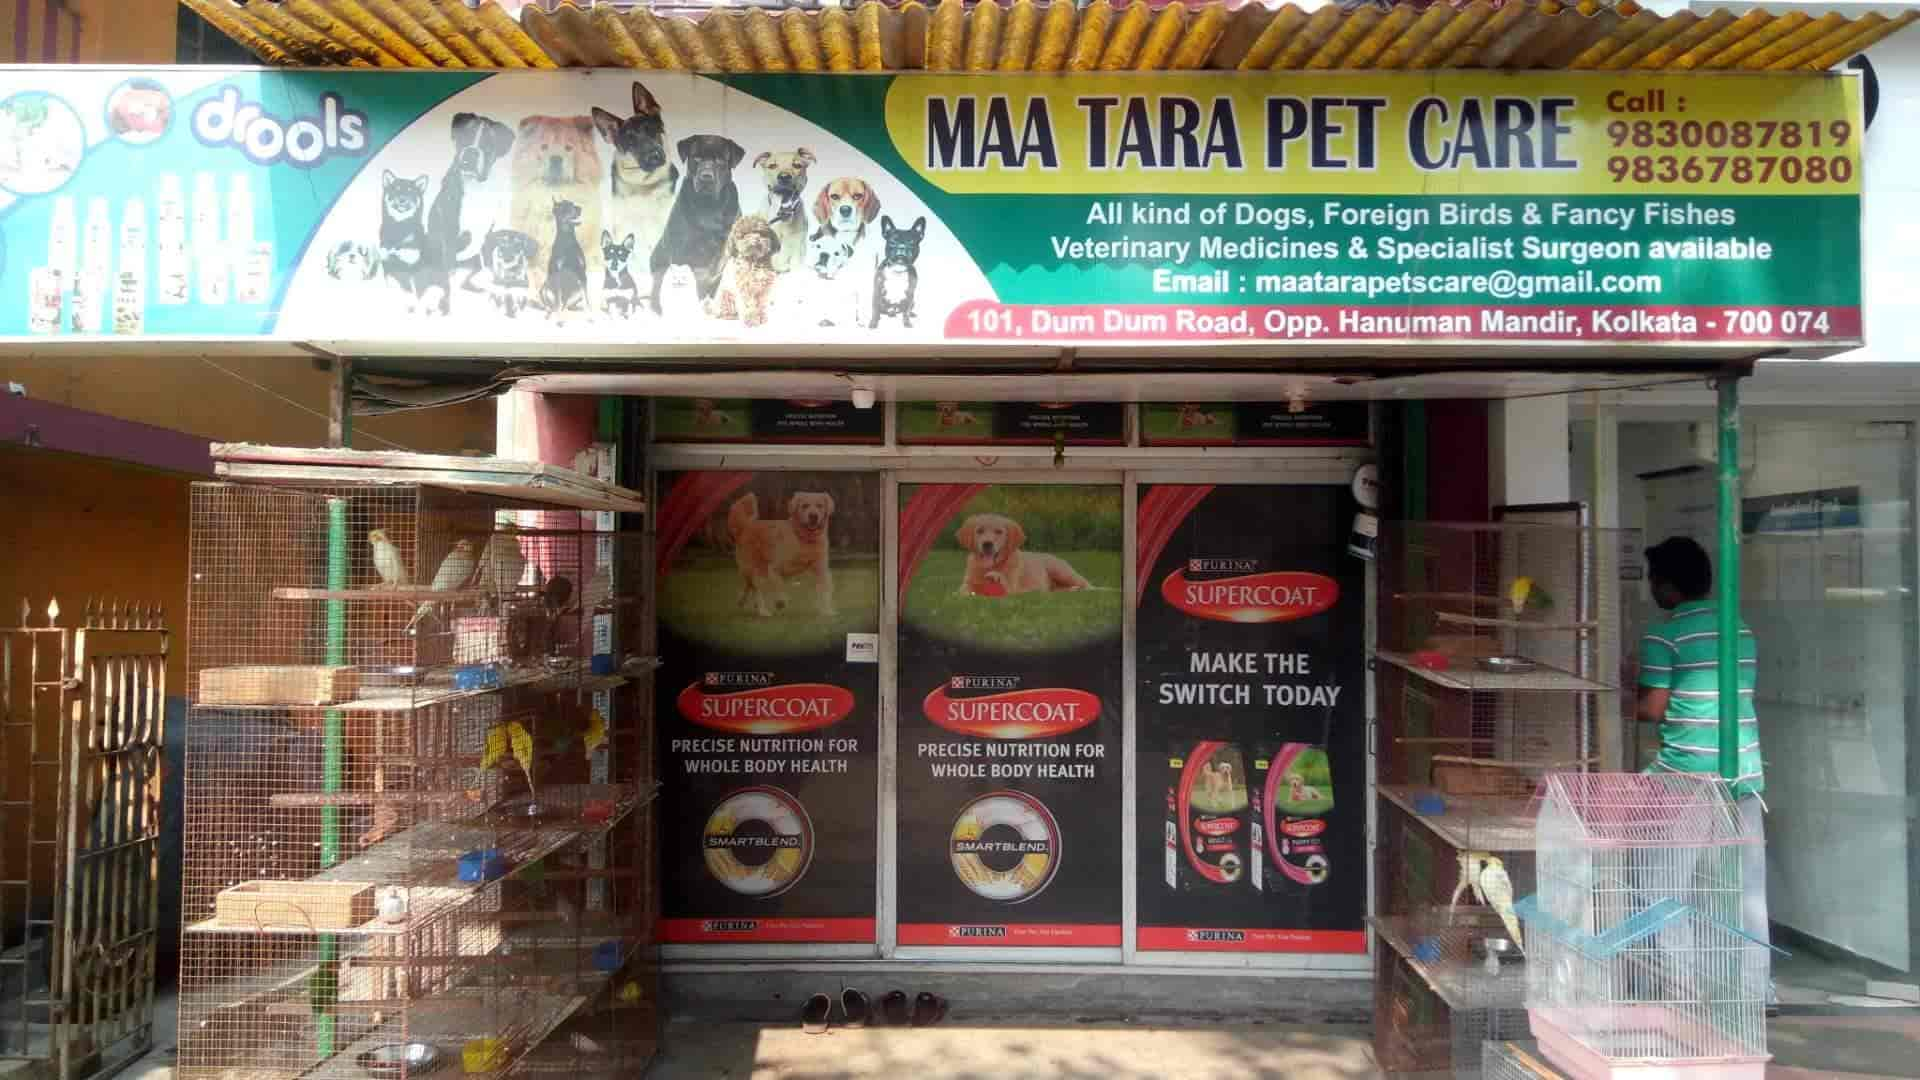 Maa Tara Pet Care, Motijhil - Pet Shops in Kolkata - Justdial